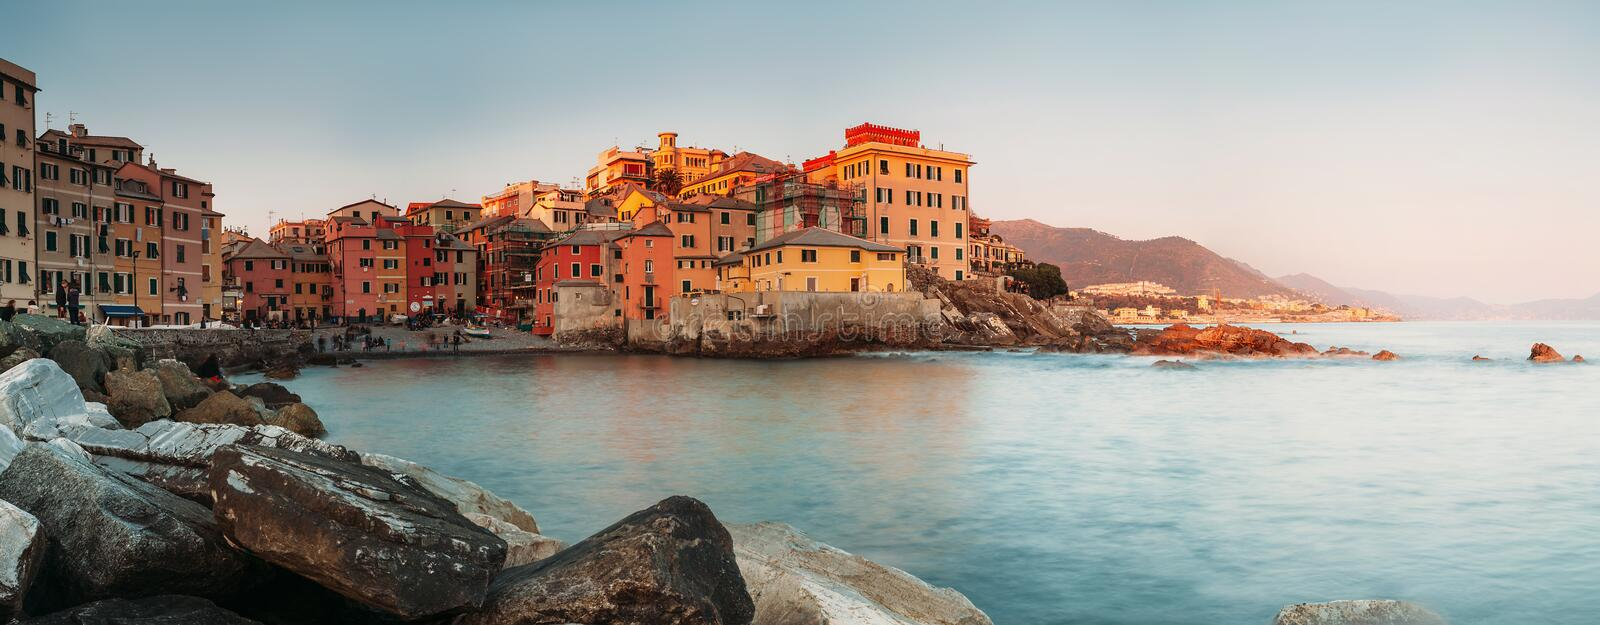 Sunset in Boccadasse bay, Italy, Genoa panorame image stock photography